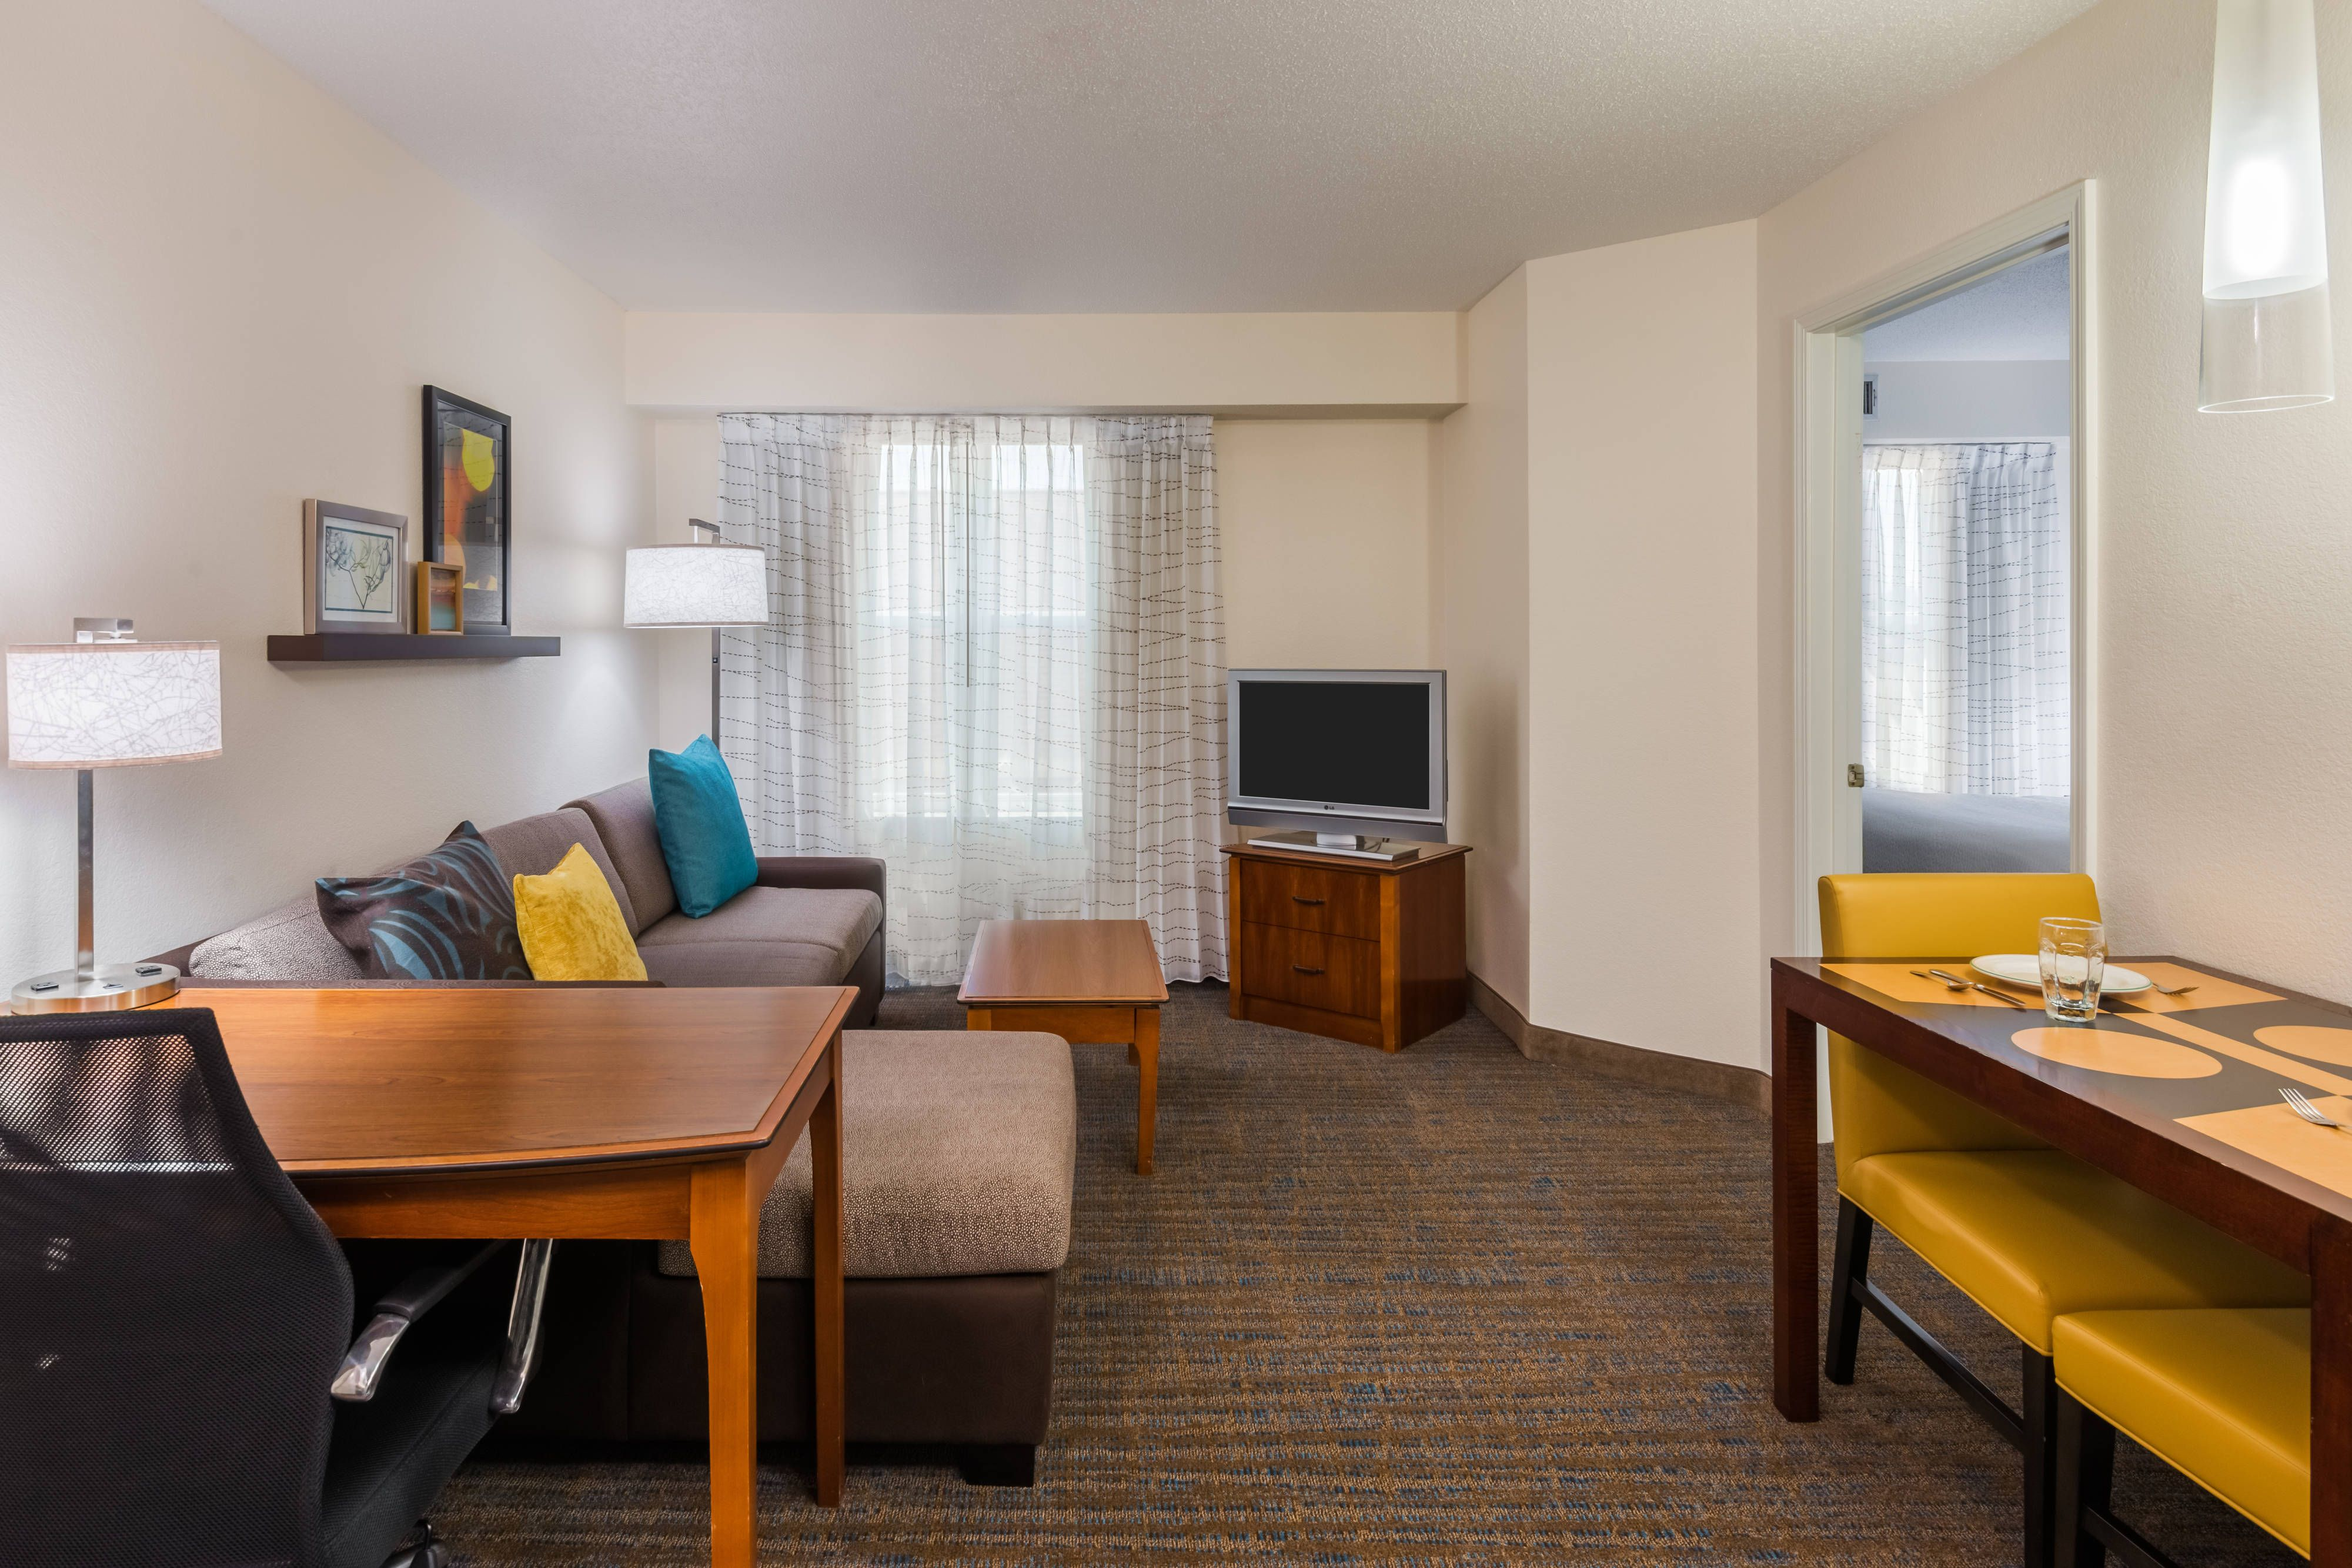 Residence Inn Boston Brockton Easton One Bedroom Suite Living Area Holidays Memorable Guestroom Home Design Plans House Design Home Decor